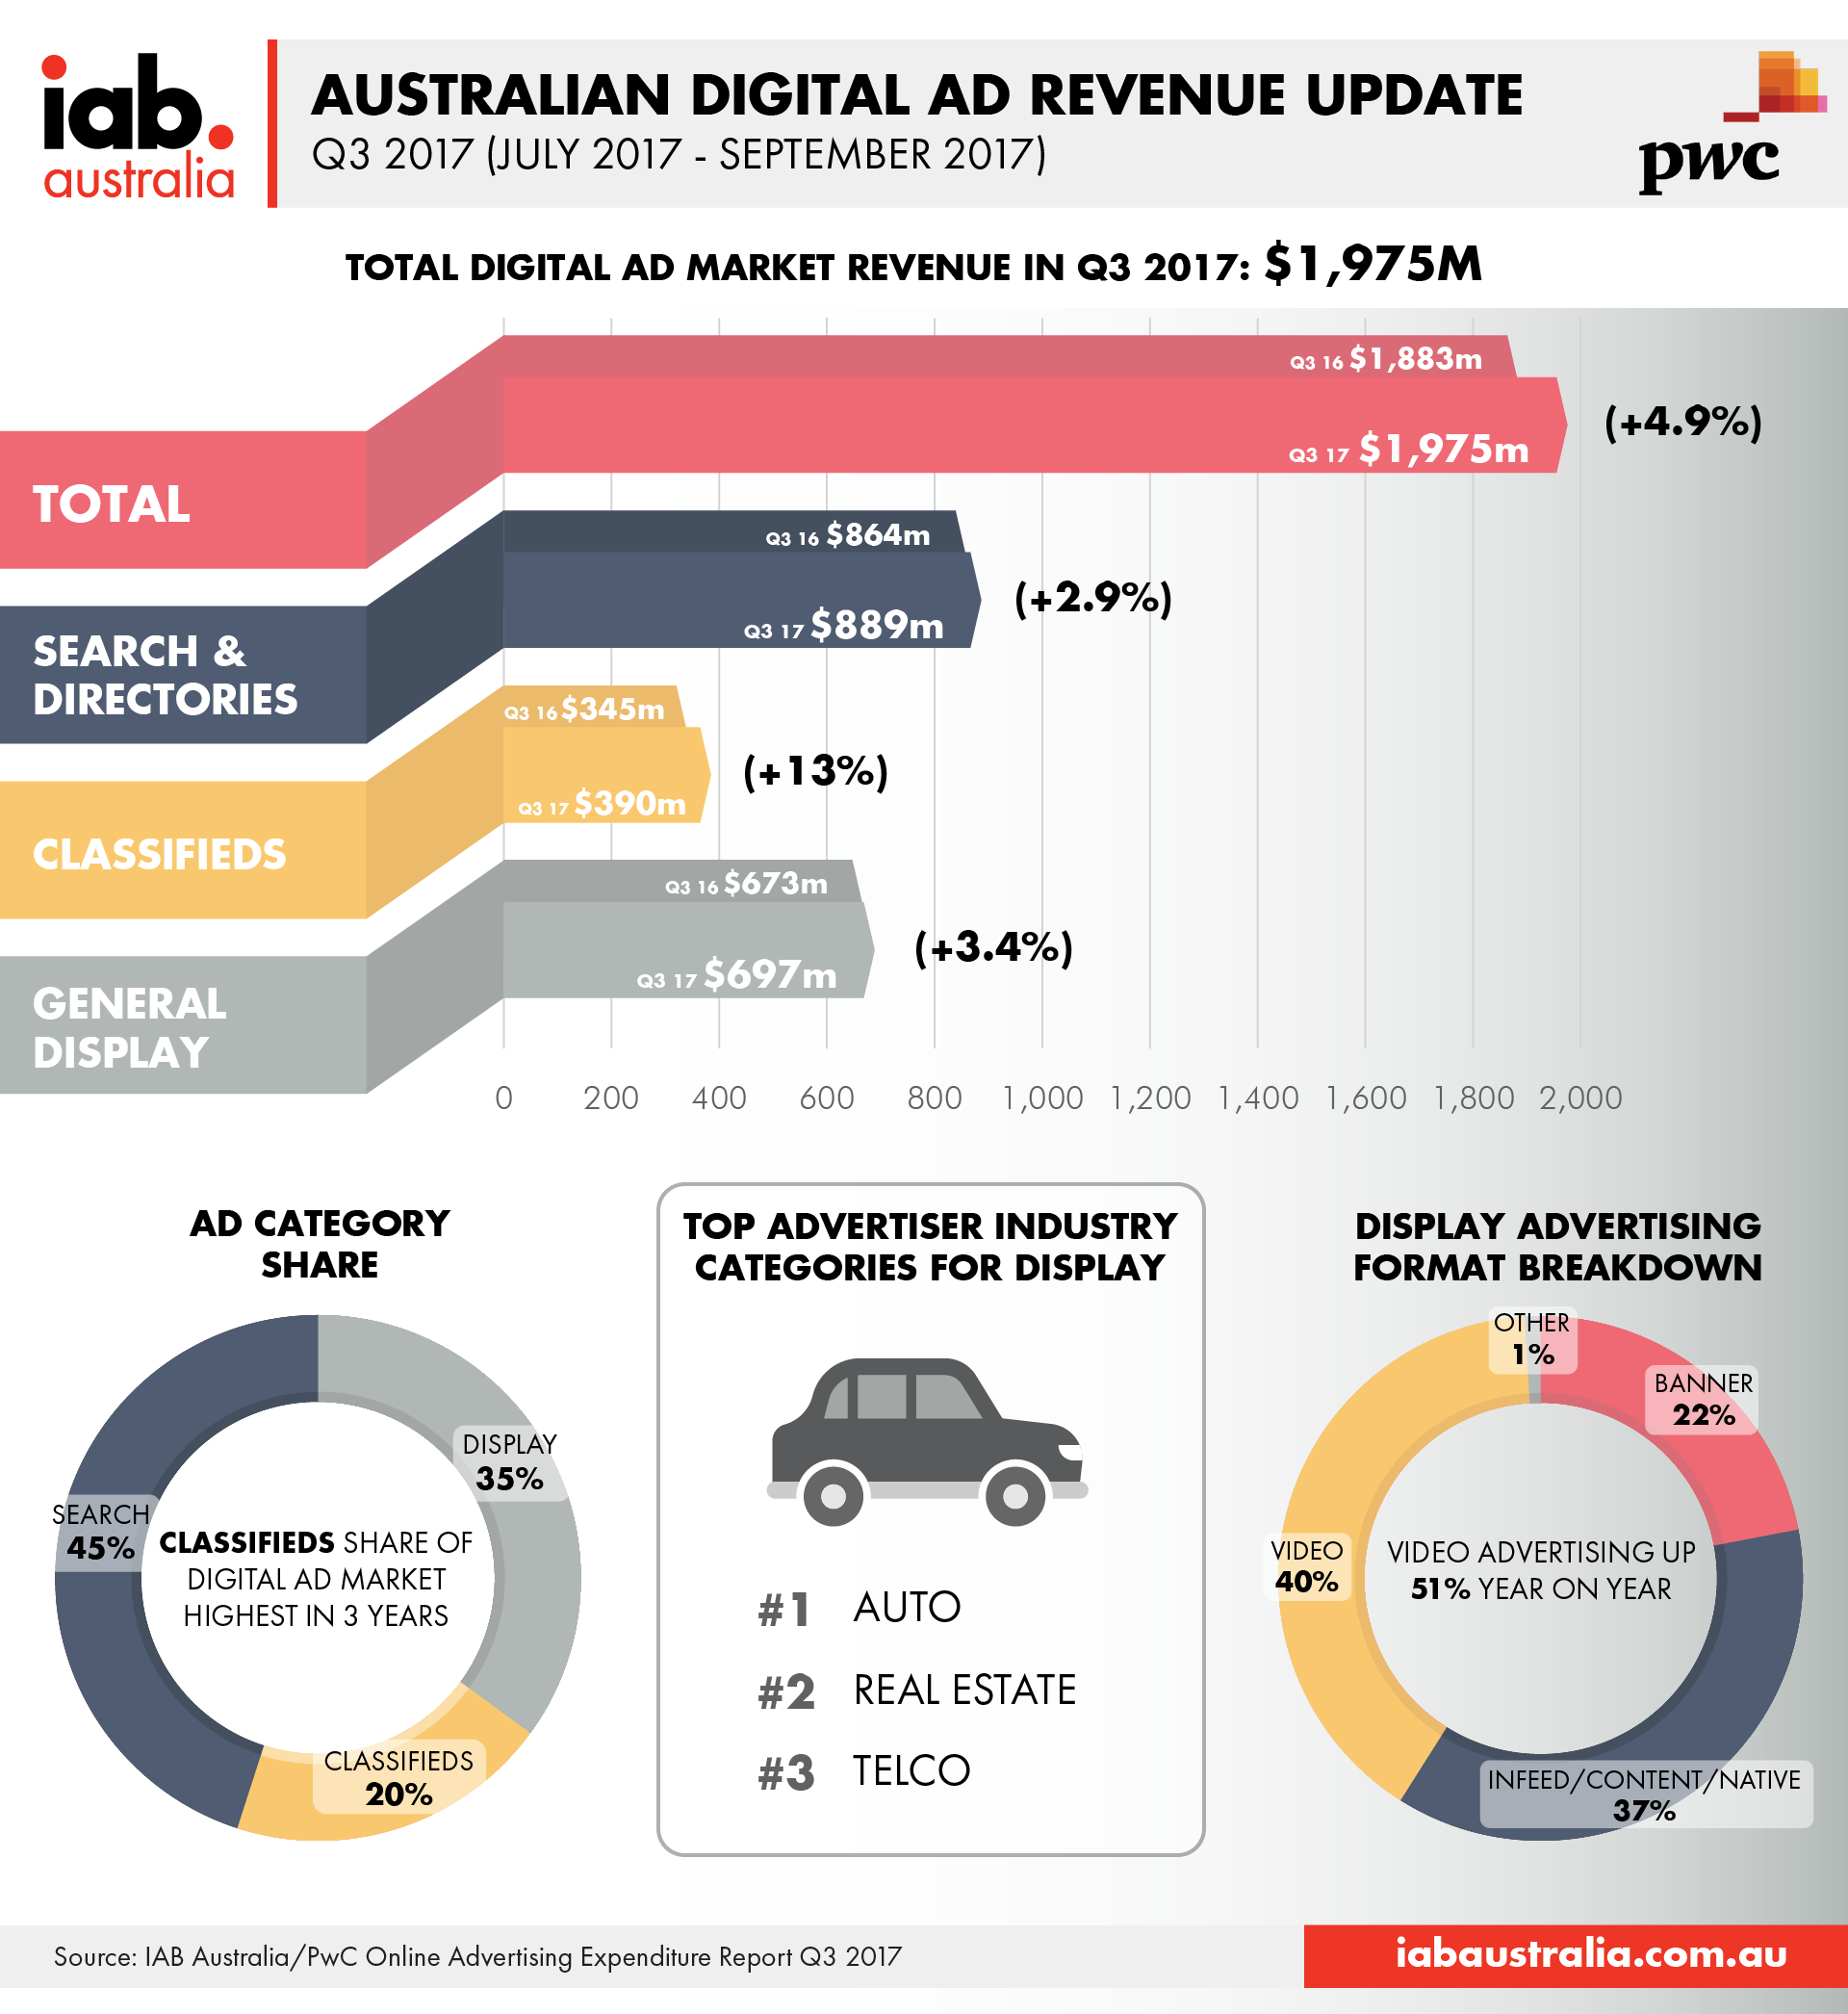 IAB/PwC OAER Digital Ad Revenue Update Q3 2017